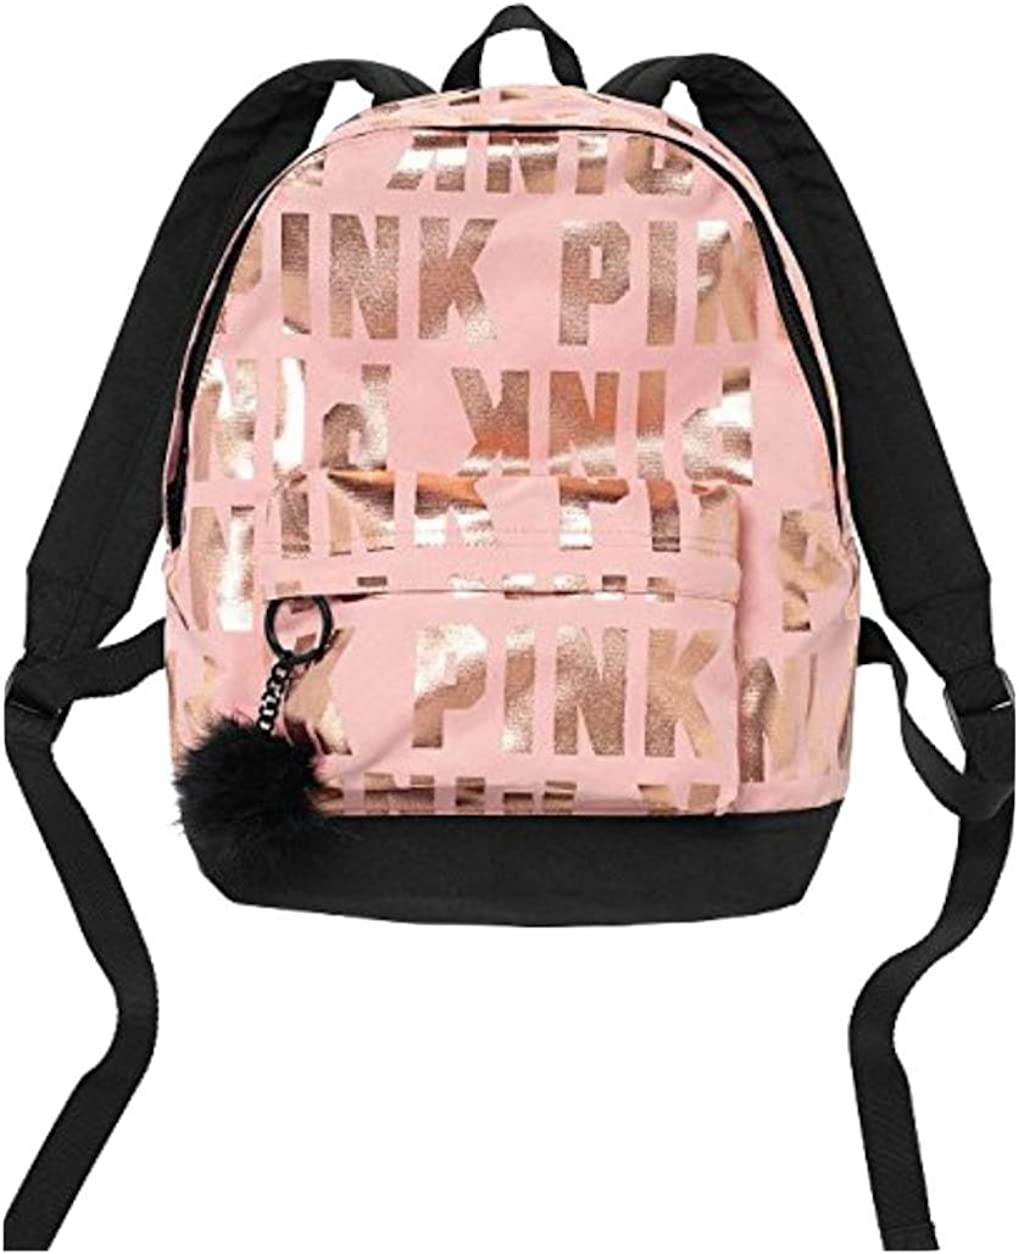 LIMITED EDITION CLEAR JELLY TOTE WITH VS DOG // PUP SIGNATURE MINI Backpack WITH FUZZY KEYCHAIN PINK VICTORIA SECRET SOLD OUT